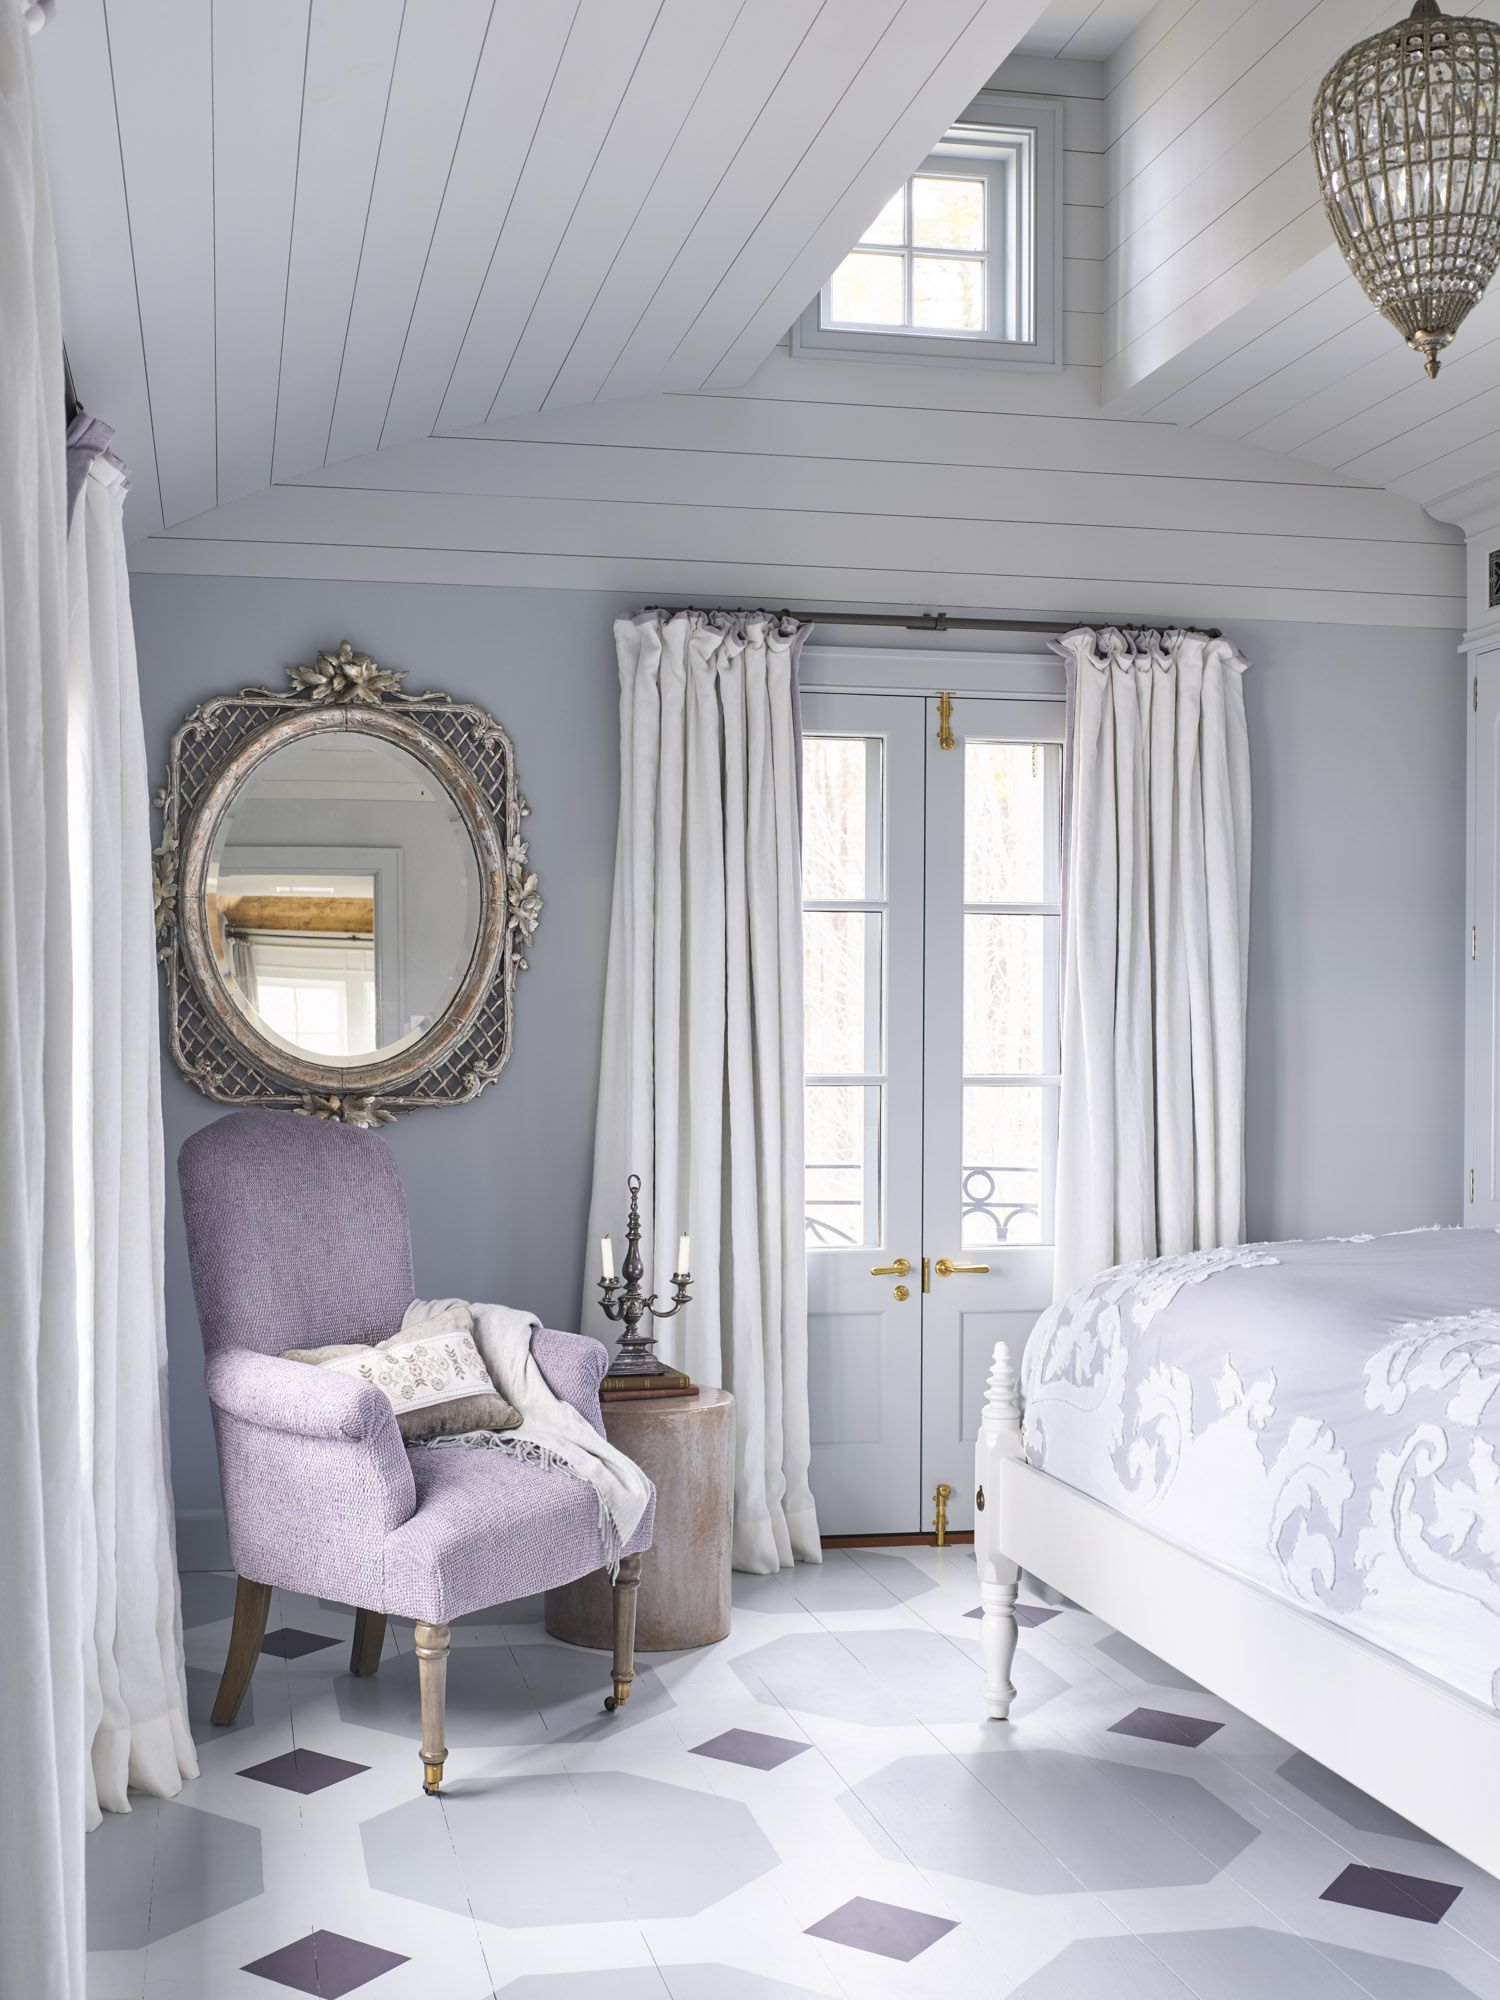 Room Maker Design: 24 Lovely Bedroom Colors That'll Make You Wake Up Happier